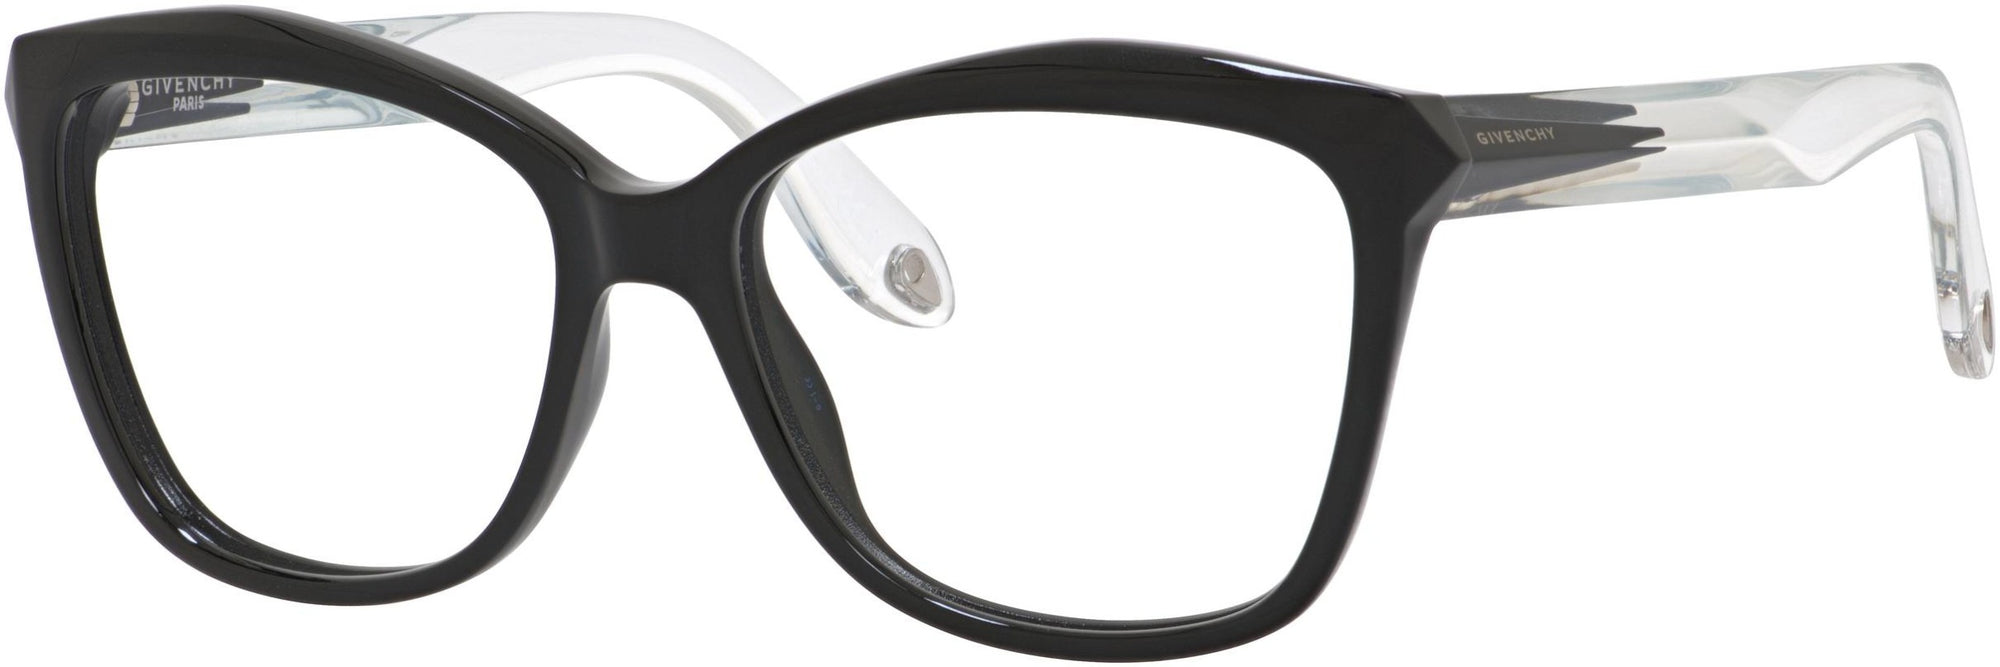 Givenchy GV 0008 Cat Eye/Butterfly Eyeglasses 0AM3-0AM3  Black Crystal (00 Demo Lens)